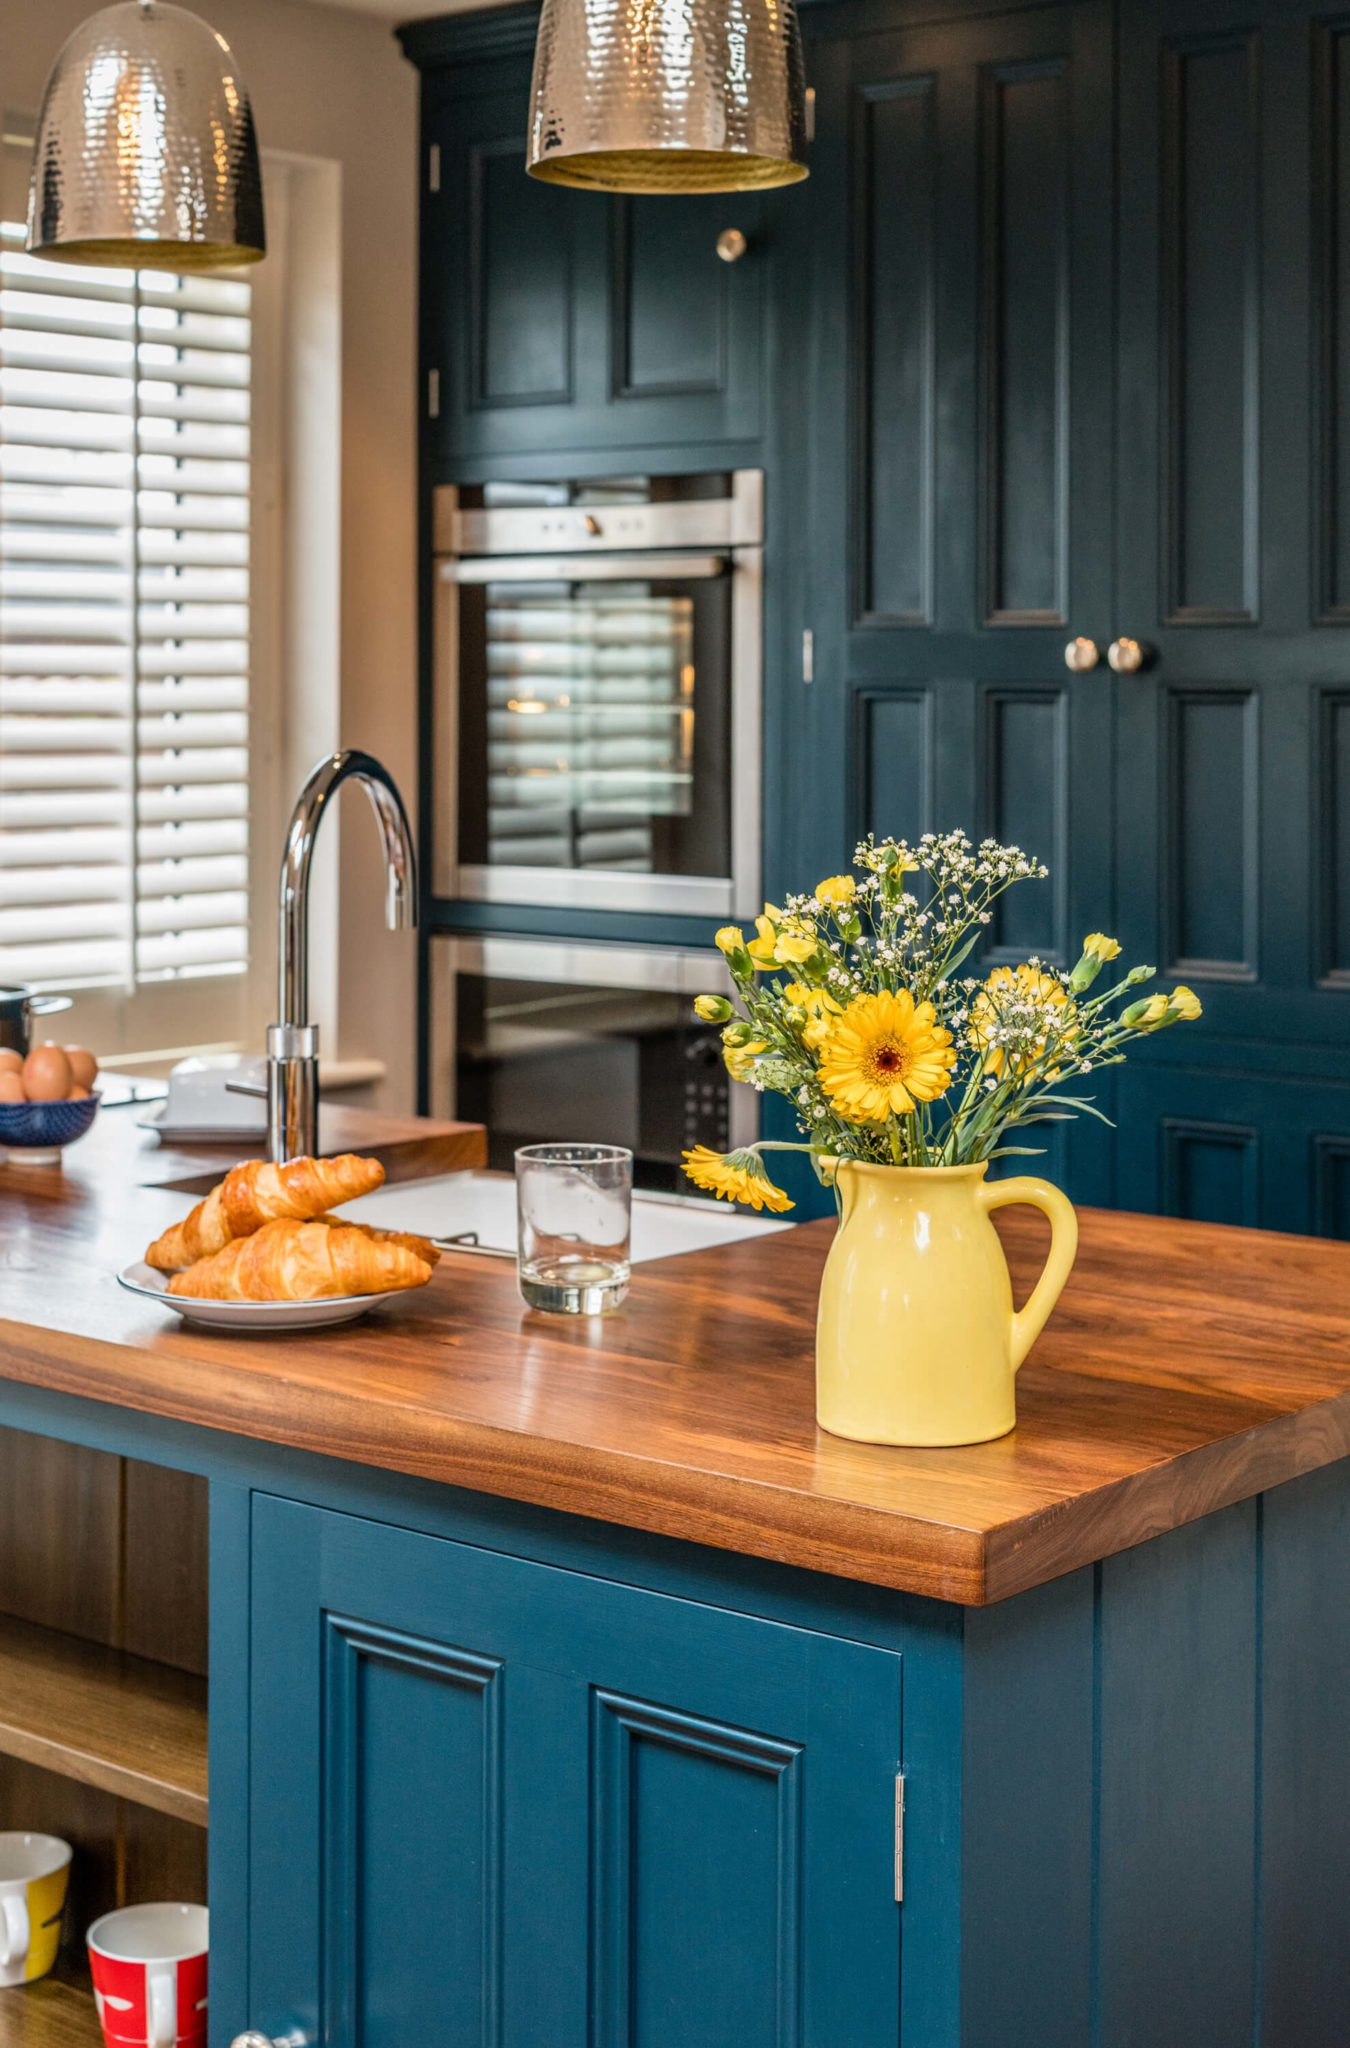 Kitchen Blue 4 - Hill Farm Furniture